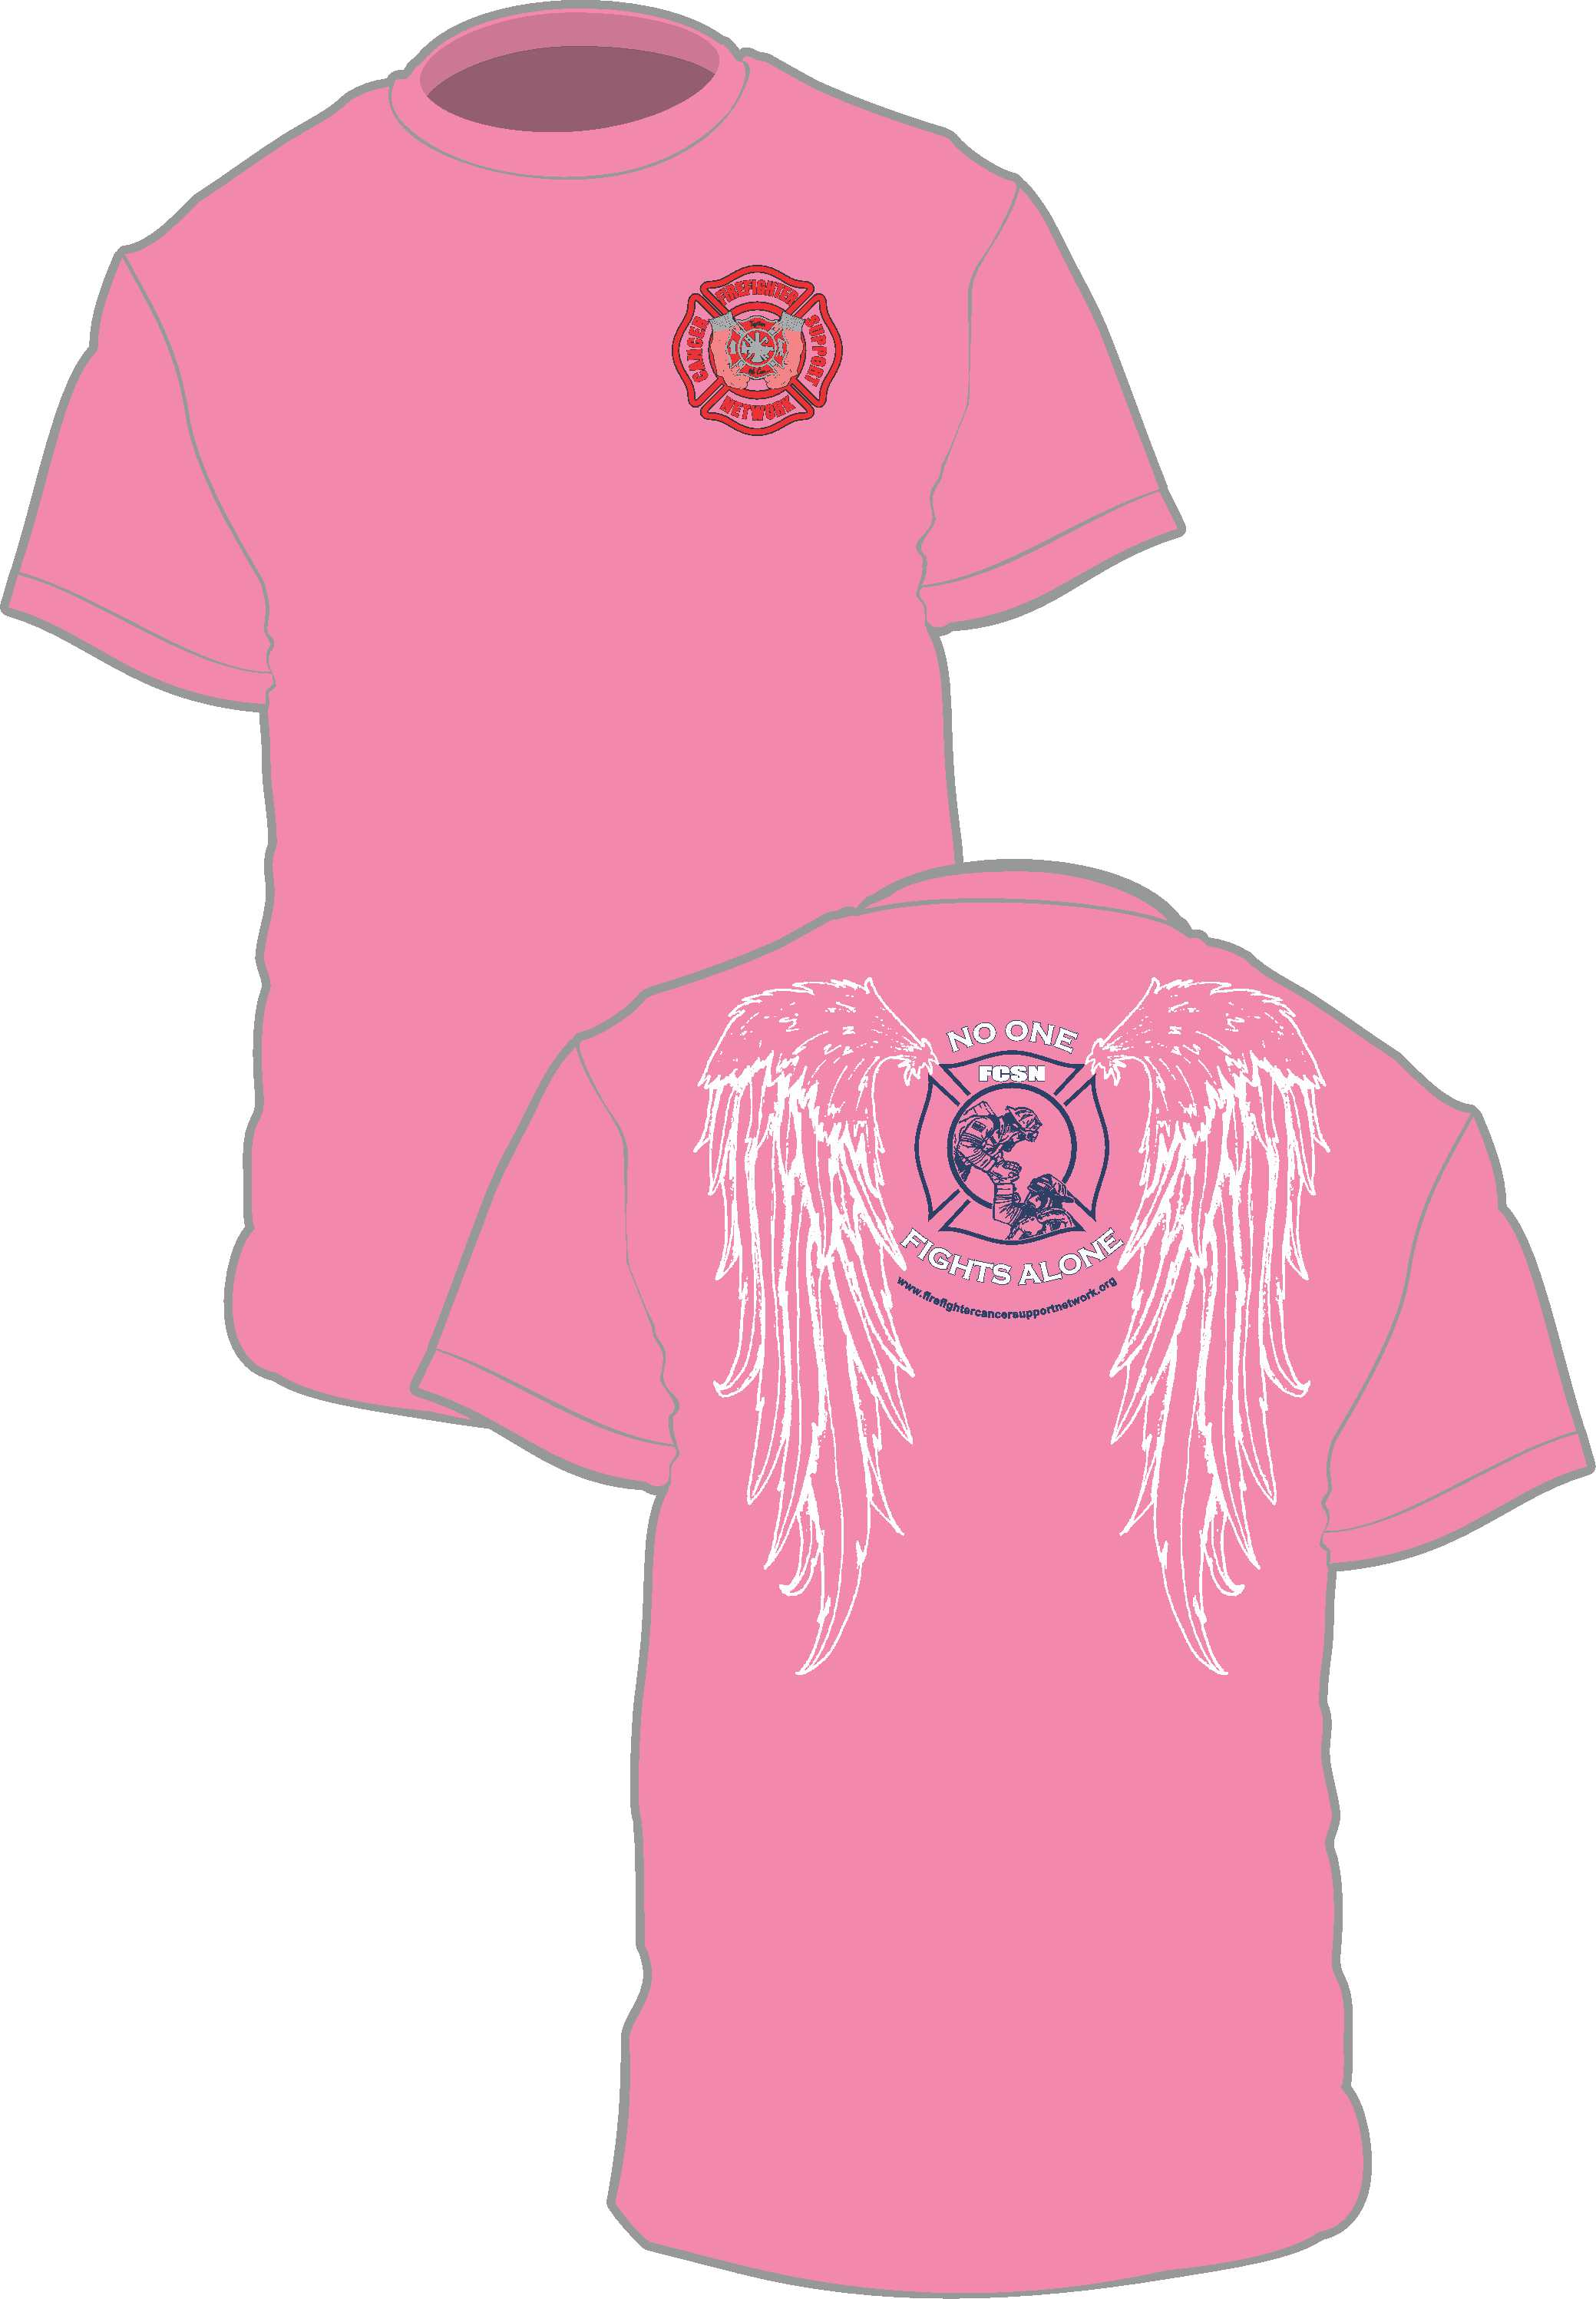 Breast Cancer Awareness T Shirt W Wings Firefighter